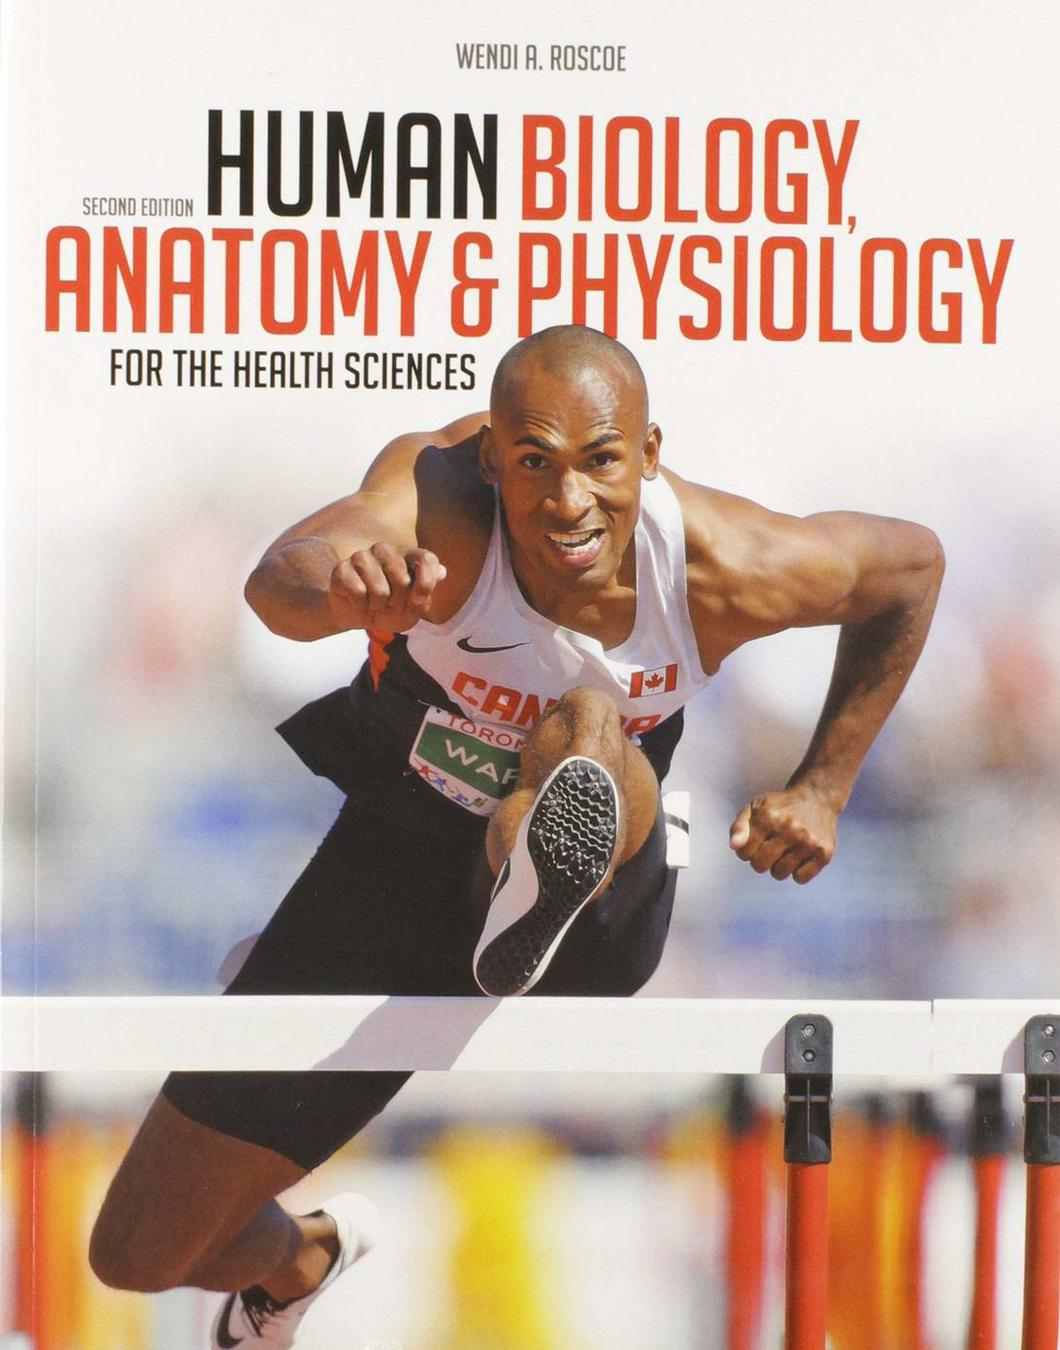 Human Biology, Anatomy & Physiology for the Health Sciences, 2nd Edition